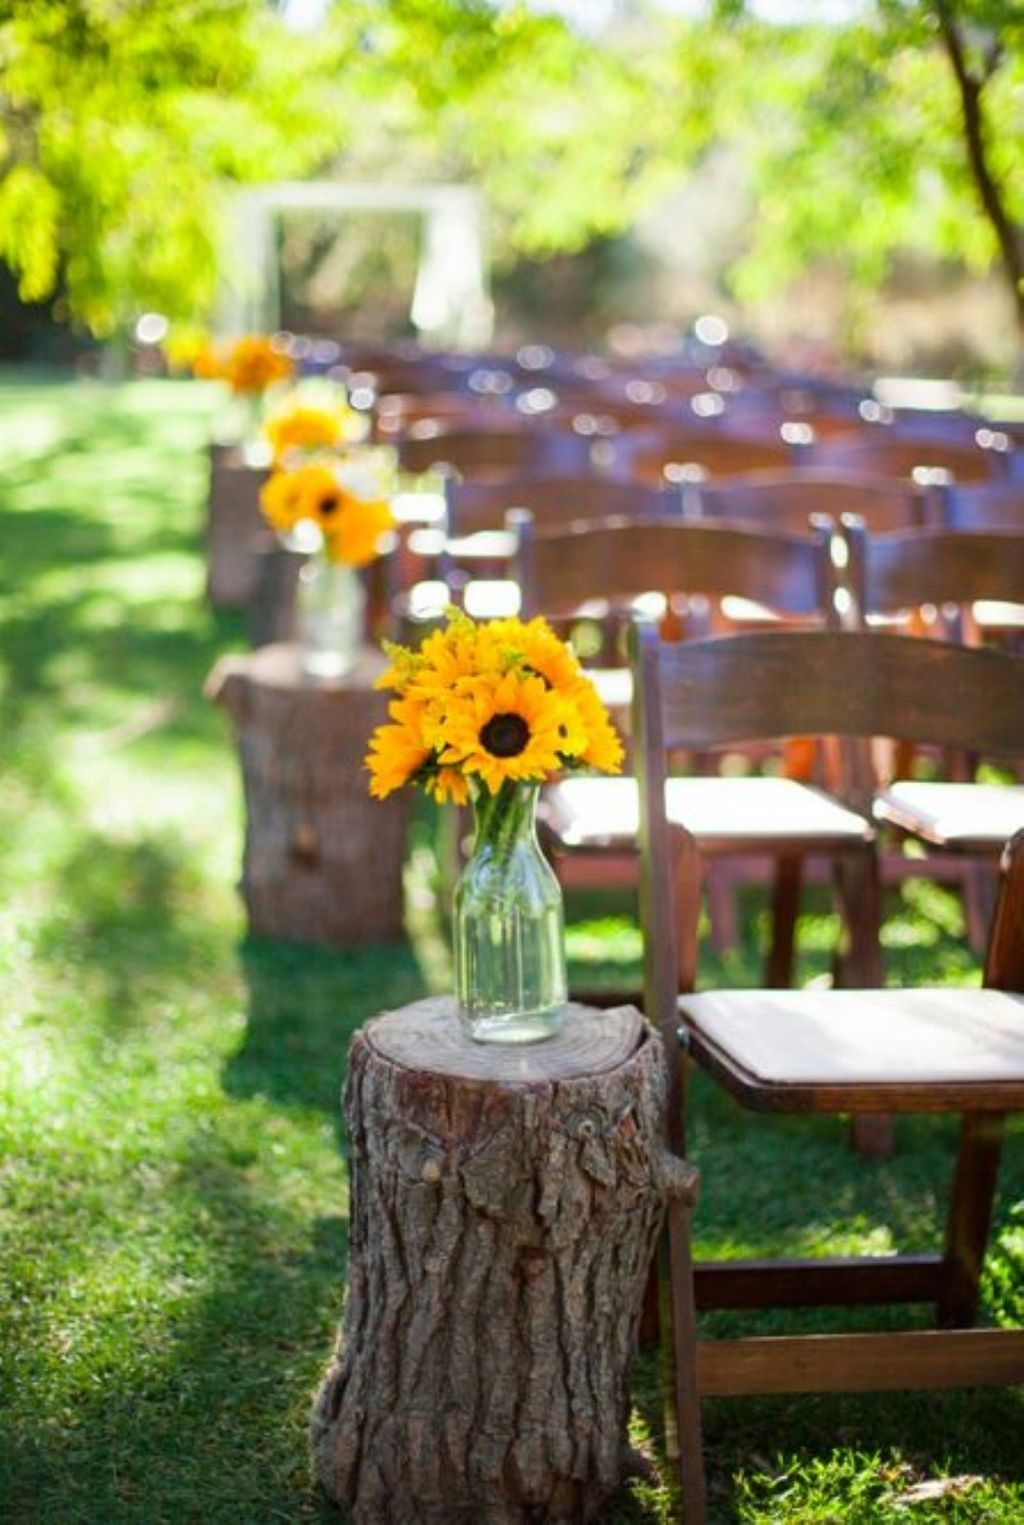 Diy sunflower wedding decorations   Beautiful Fall Rustic Decoration Ideas for Your Home  Wooden